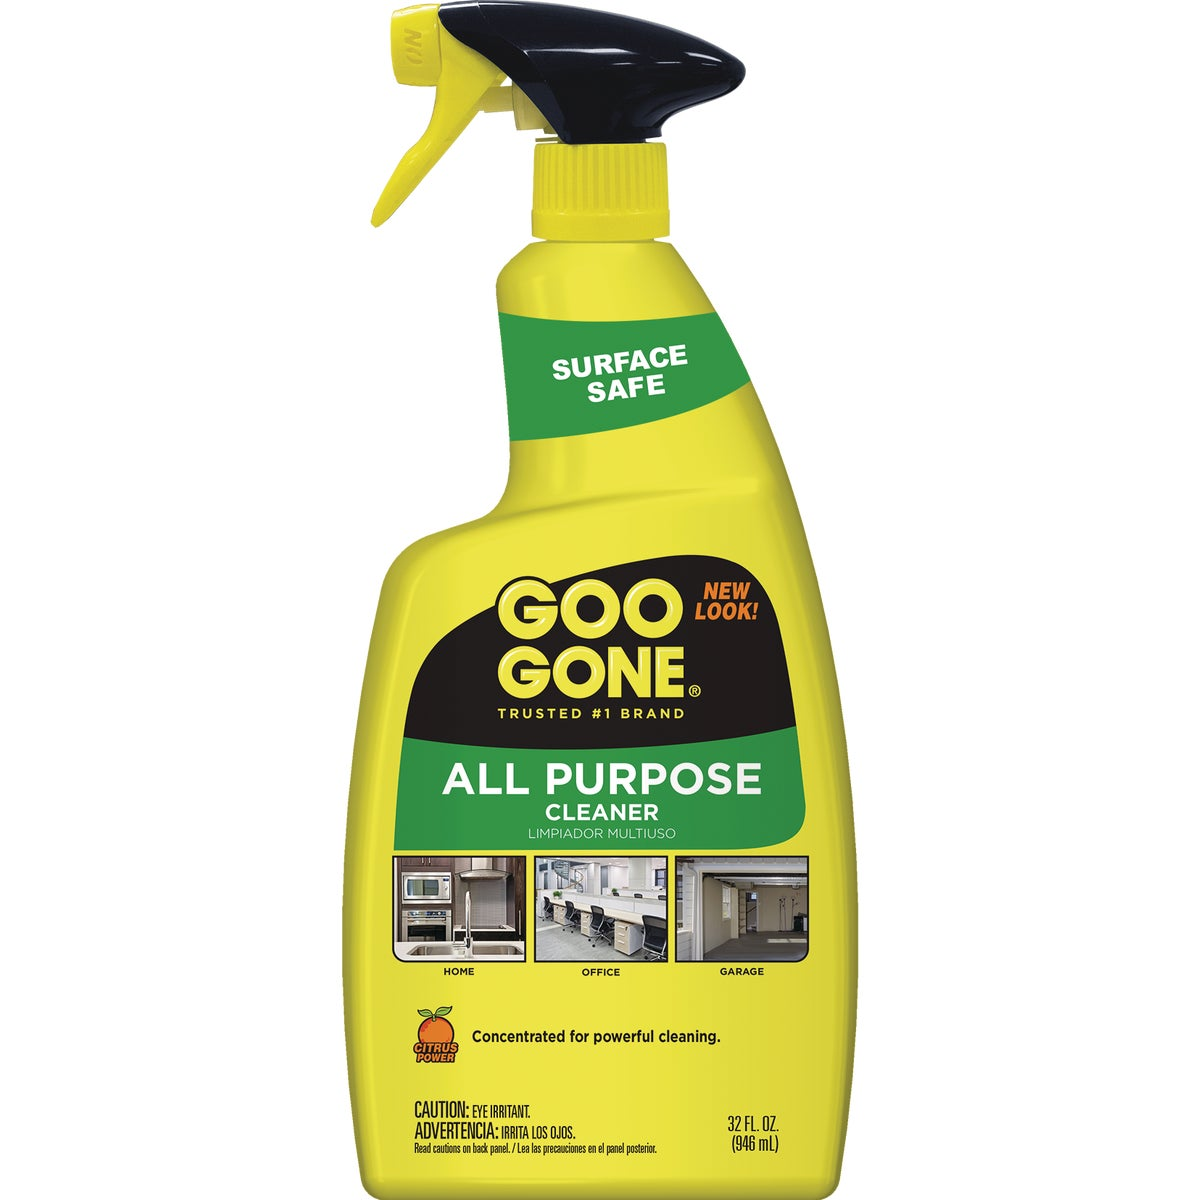 MULTI-PURPOSE CLEANER - GG66 by Magic Ntrl Magic Sci